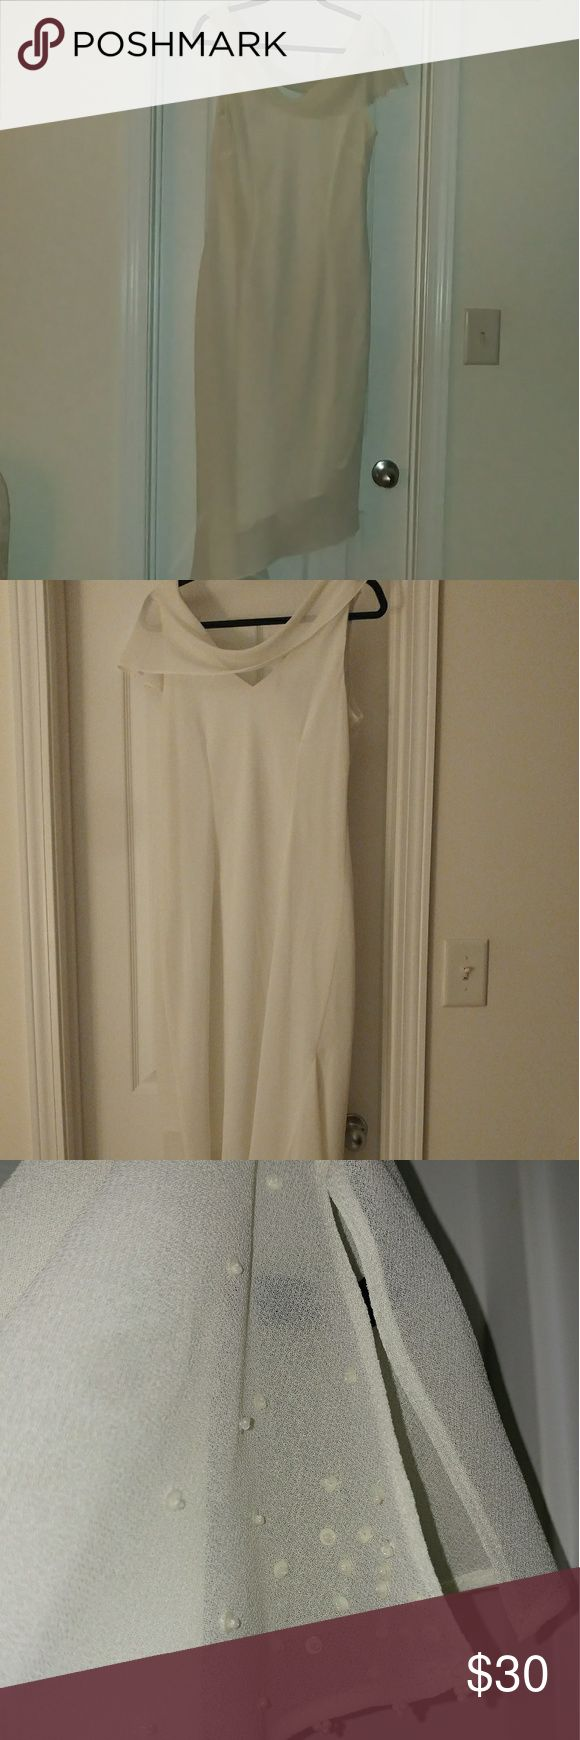 KS Collection sleeveless dress. KS Collection sleeveless dress. Beautiful soft draped front and back. The front has delicate beading. High low side. Size 12.  This is an off white creamy color.  Fully lined, soft and float material. KS Collection Dresses High Low